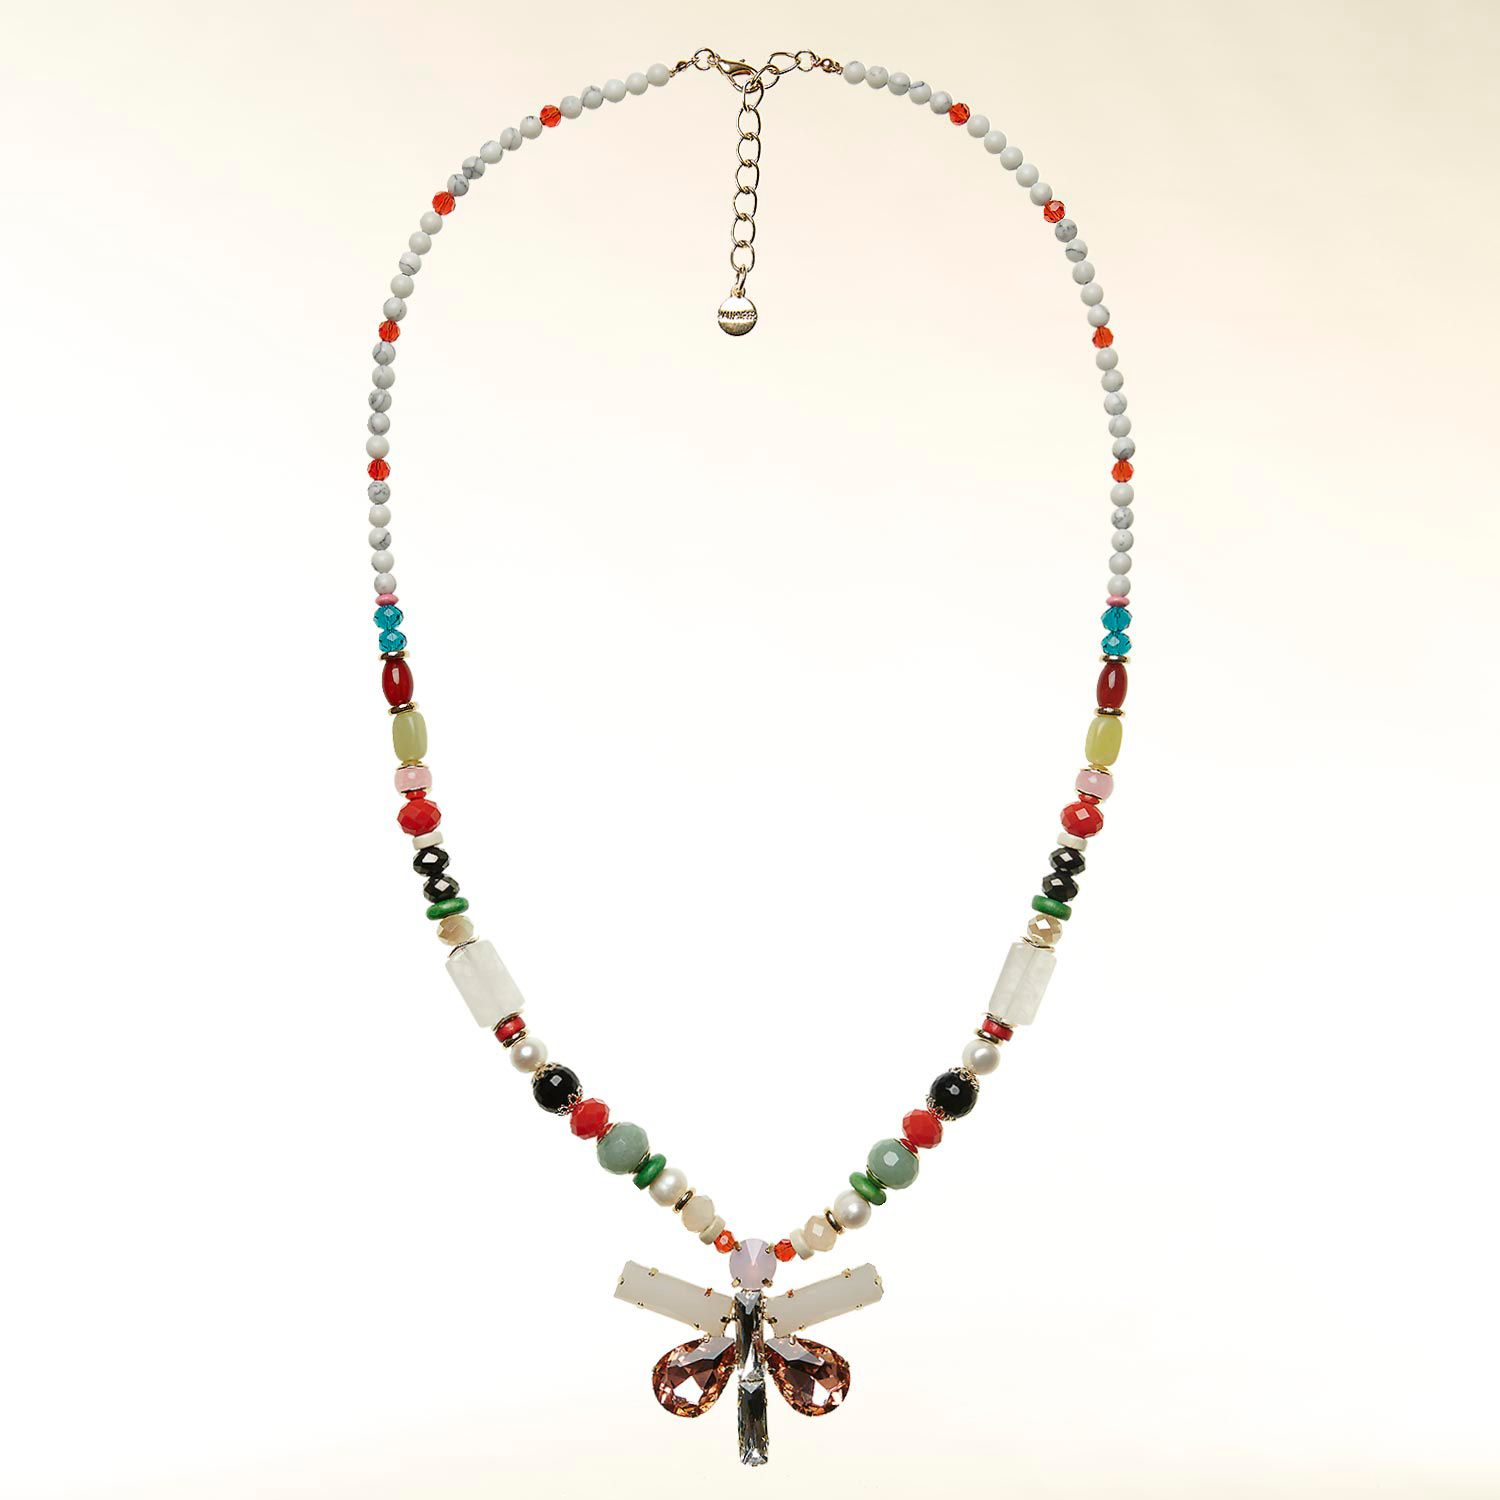 Beaded necklace with butterfly pendant